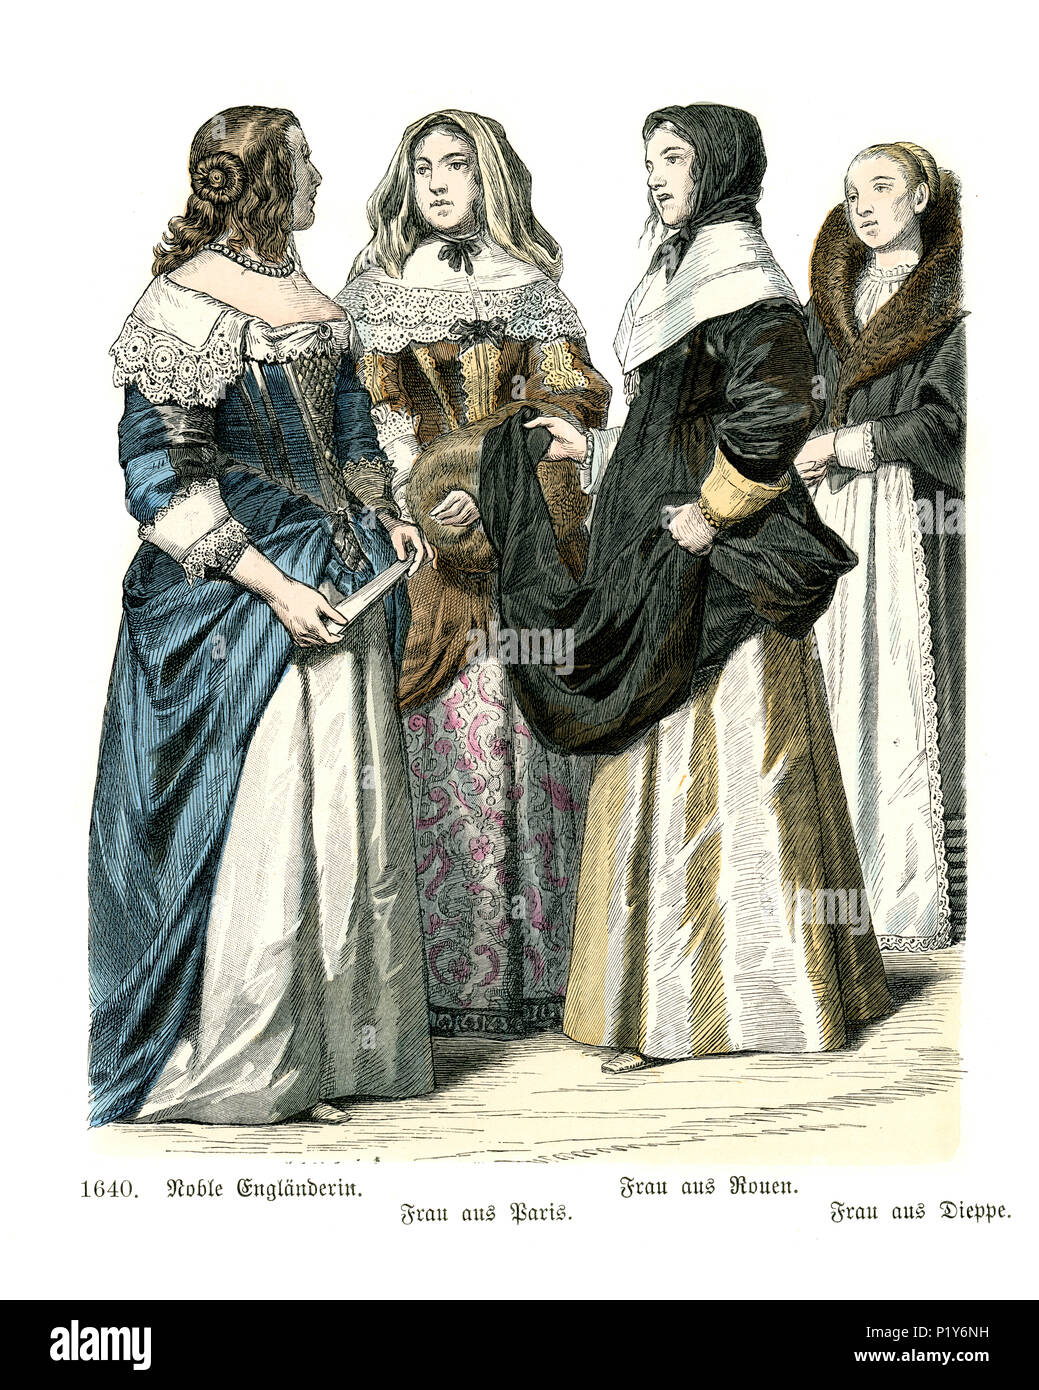 Vintage engraving of History of Fashion, Womens dresses of 17th Century.  Noble english woman, women of Paris, Rouen and Dieppe, France - Stock Image